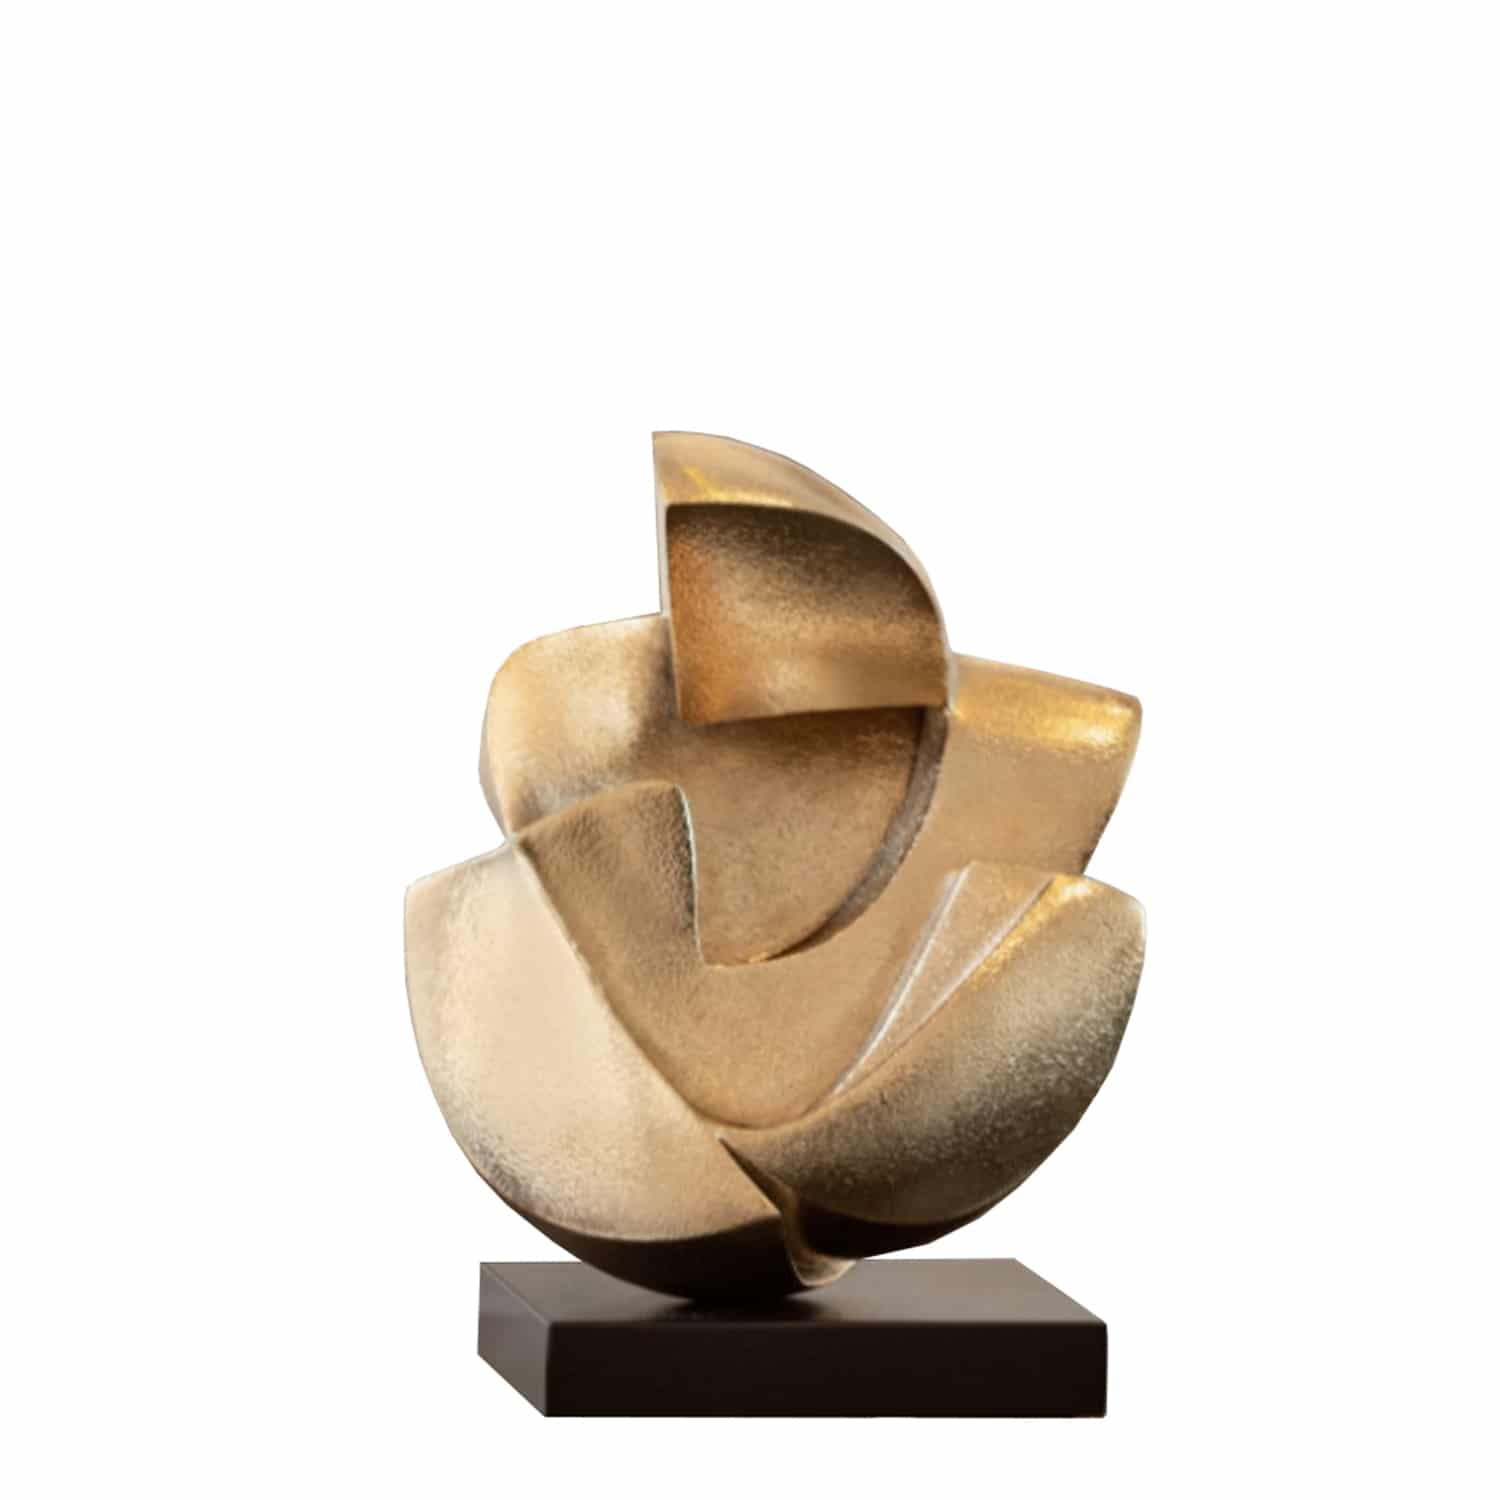 BThe Maternal Love Sculpture balances refined lines with the powerful symbol of the love shared between mother and child.